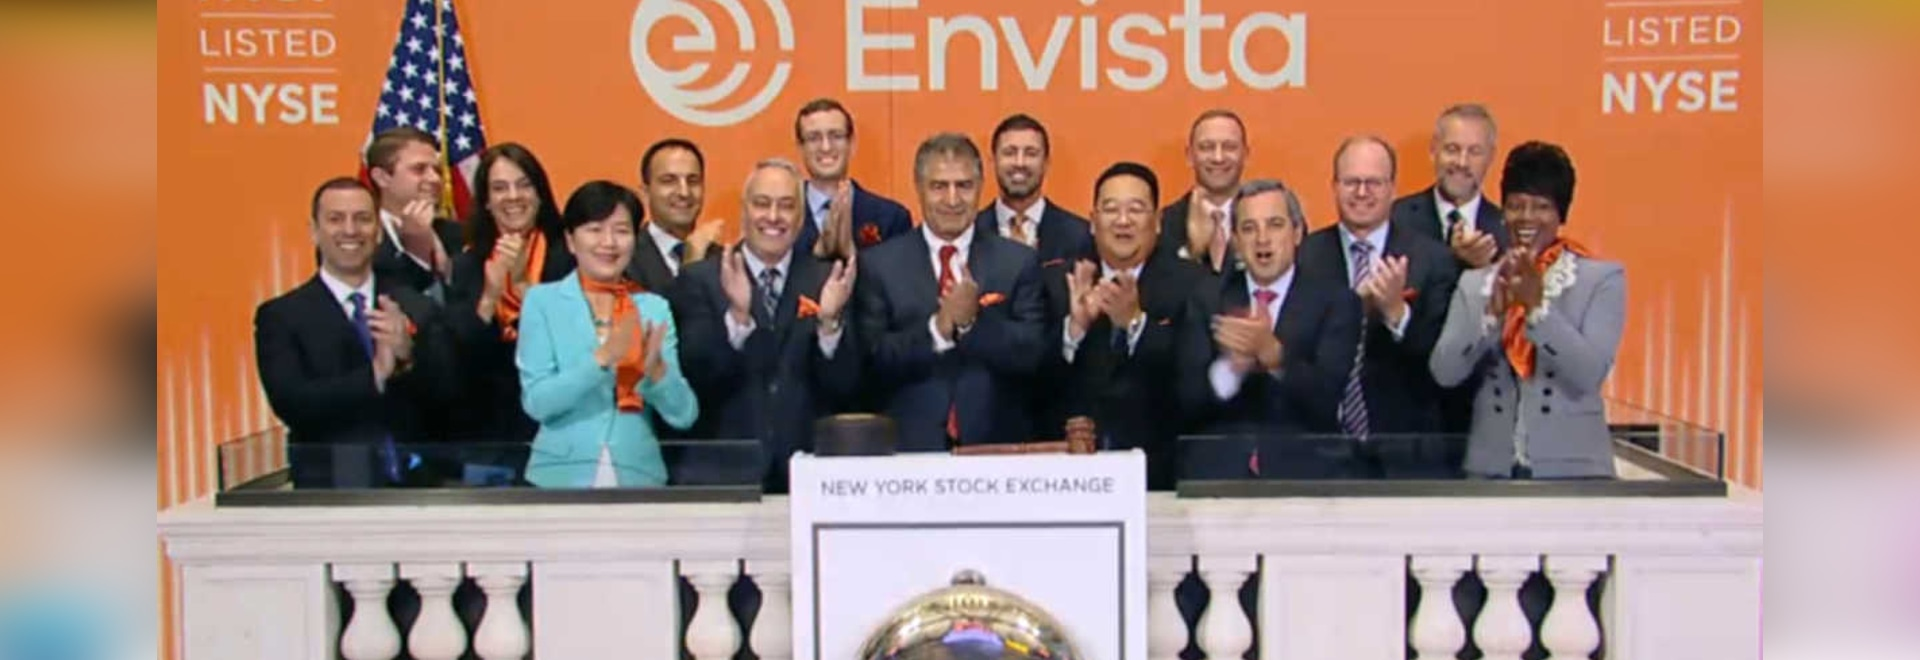 CEO and President of Envista, Amir Aghdaei (center), opened trading at the New York Stock Exchange on Sept. 20 to mark the successful spinoff of Danaher's dental arm. (Image: New York Stock Exchange)